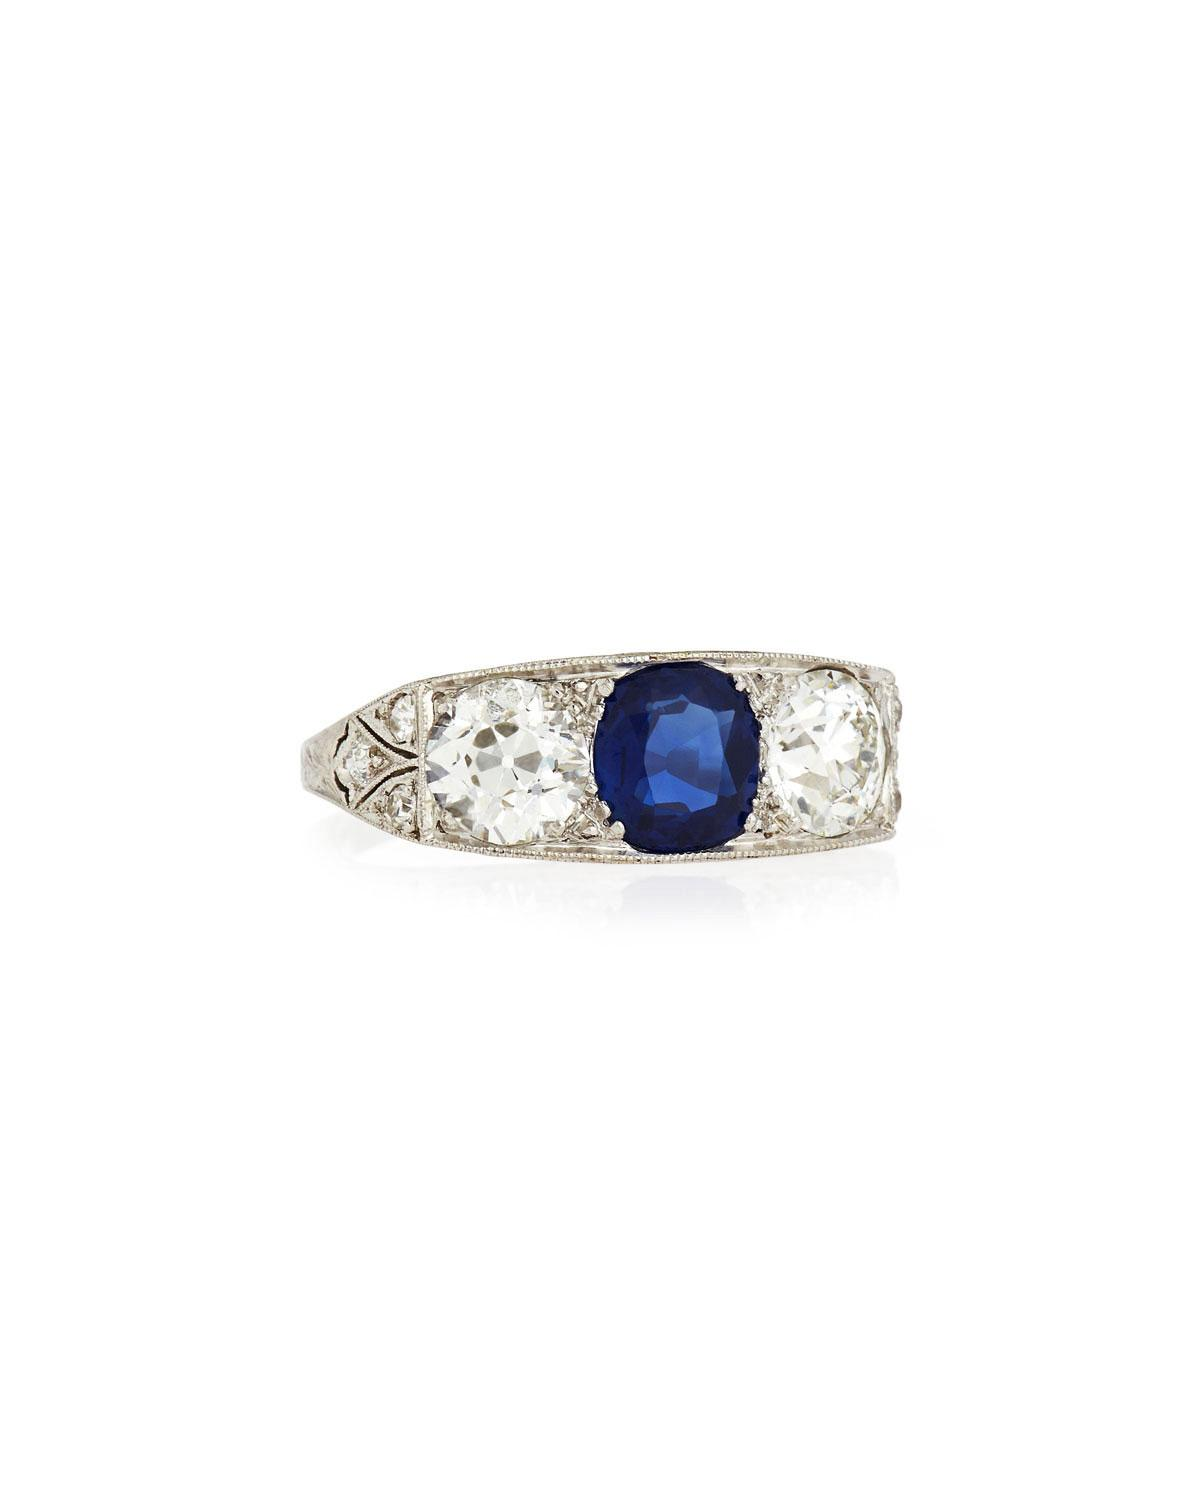 Estate Edwardian Three-Stone Sapphire and Diamond Ring